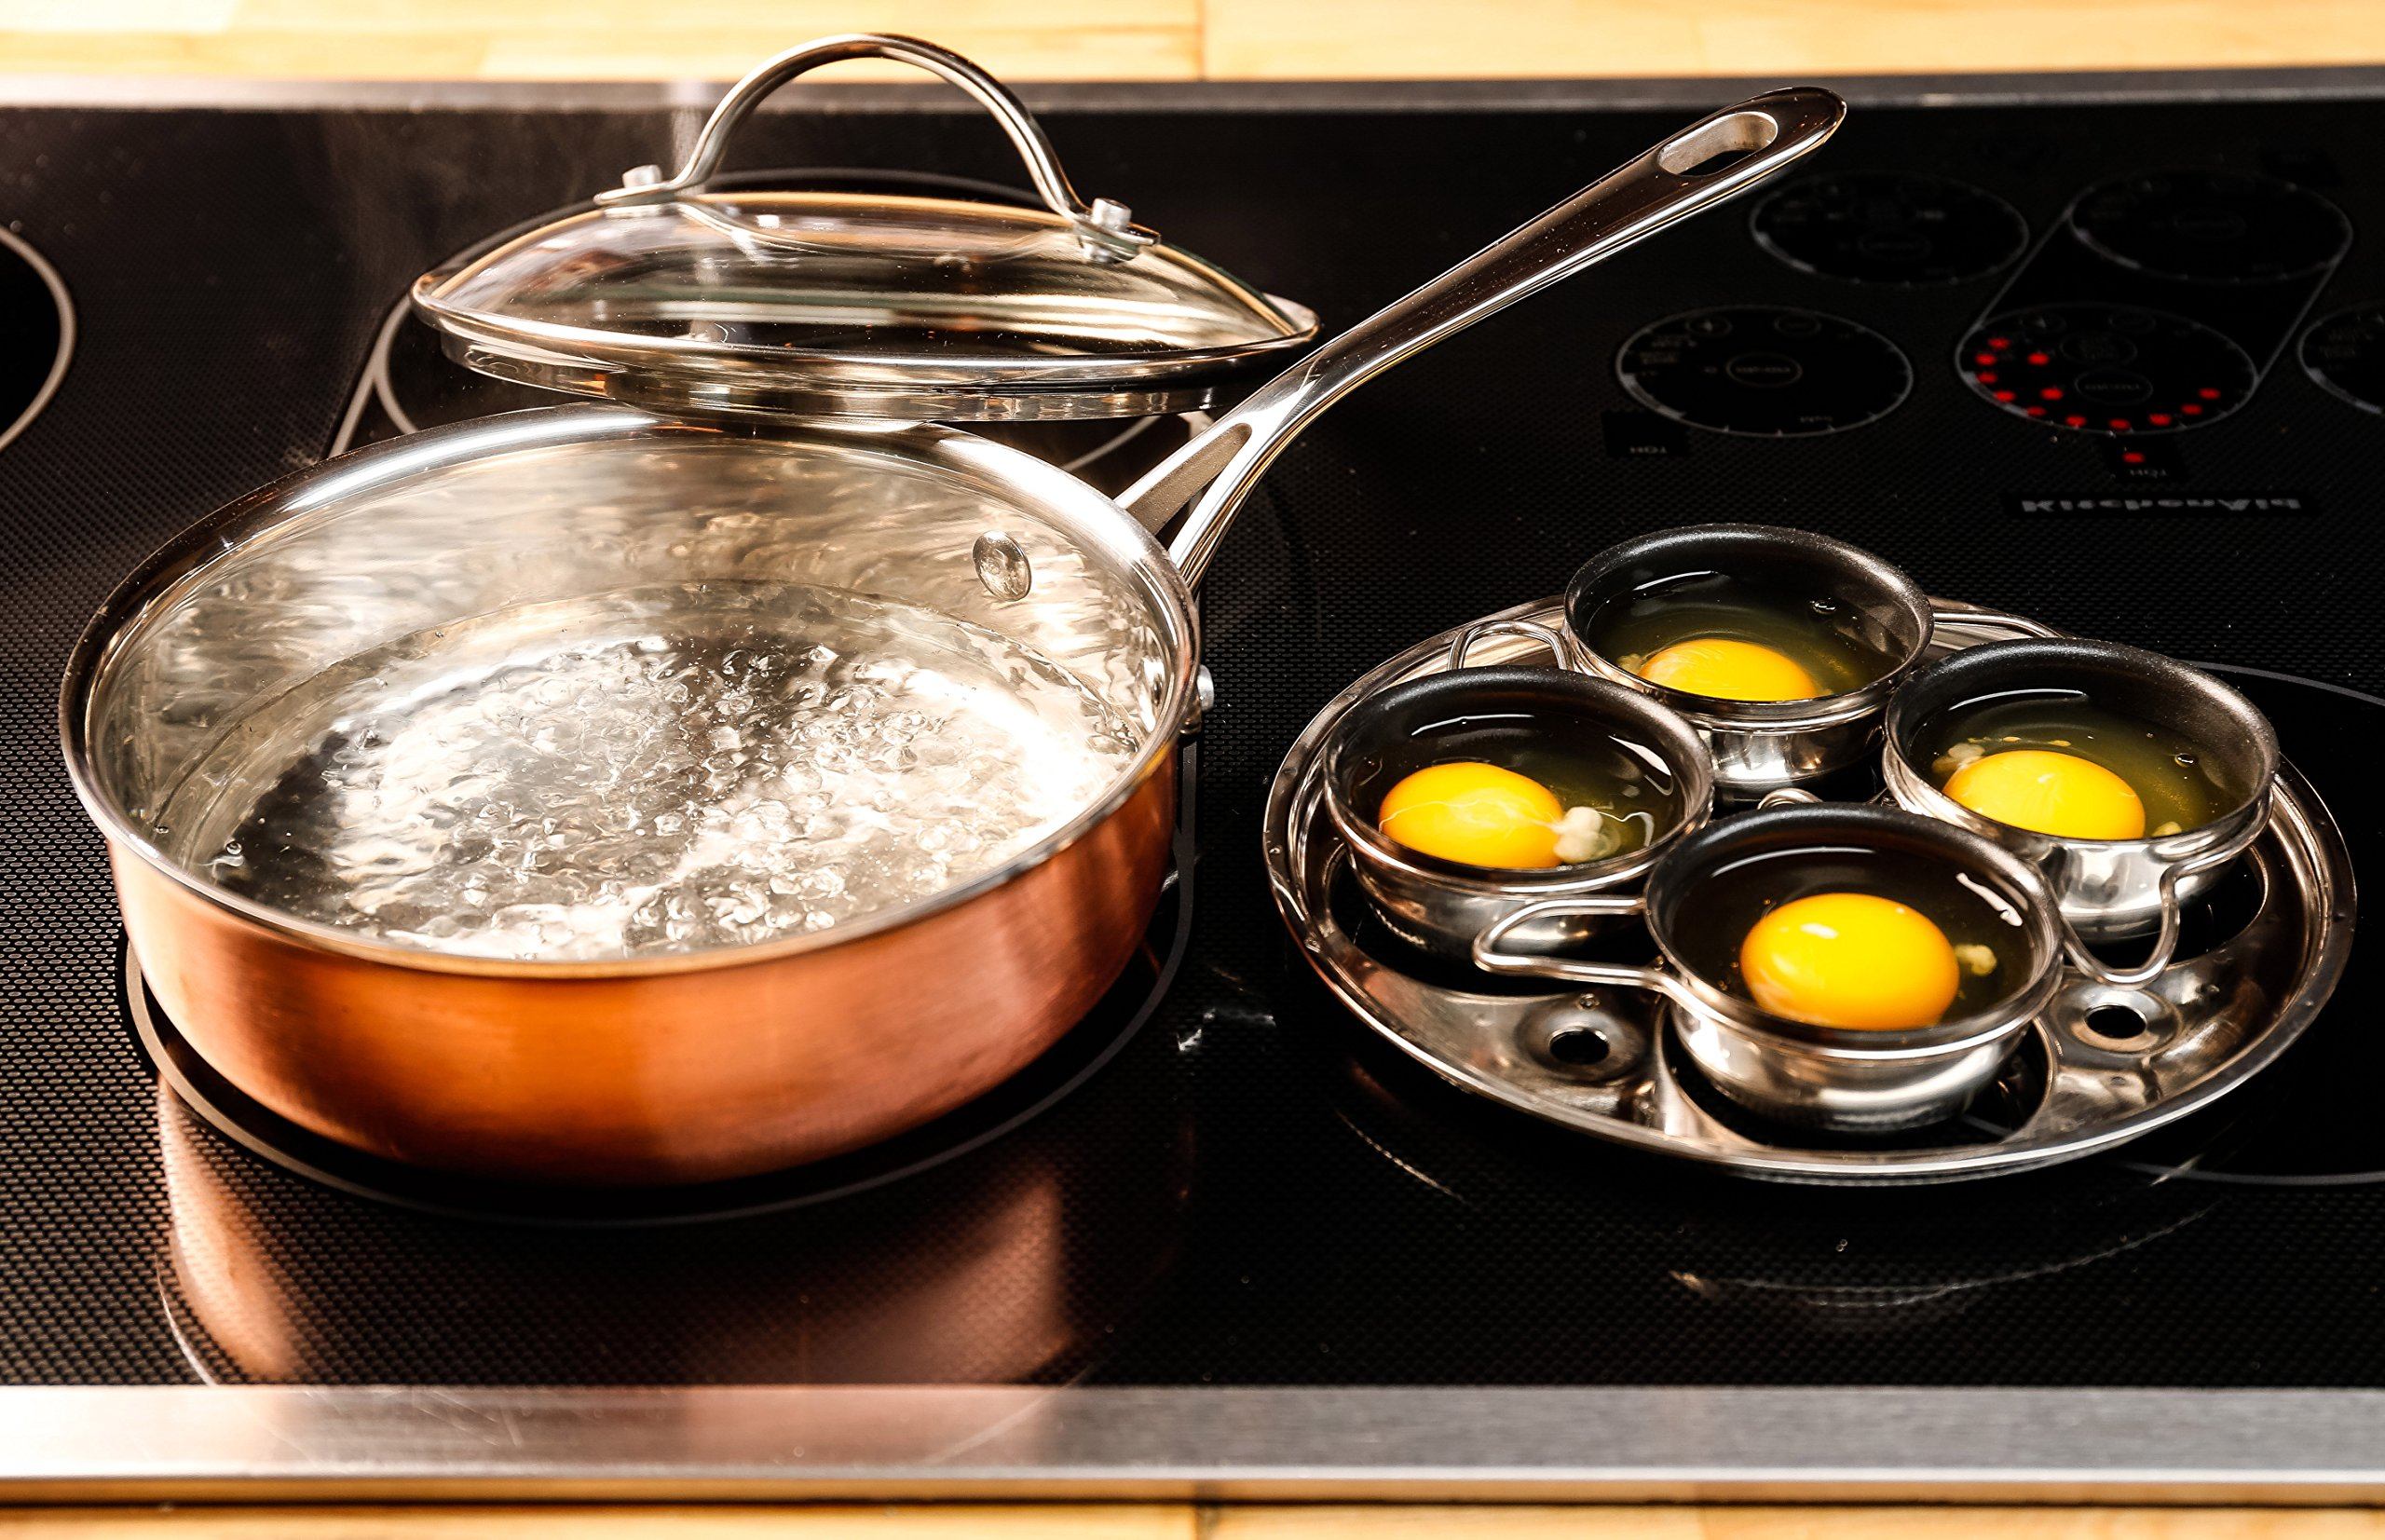 ExcelSteel 4 Cup Stainless Steel Tri-Ply, Copper, Aluminum, Stainless Steel Egg Poacher and 7'' Fry Pan by ExcelSteel